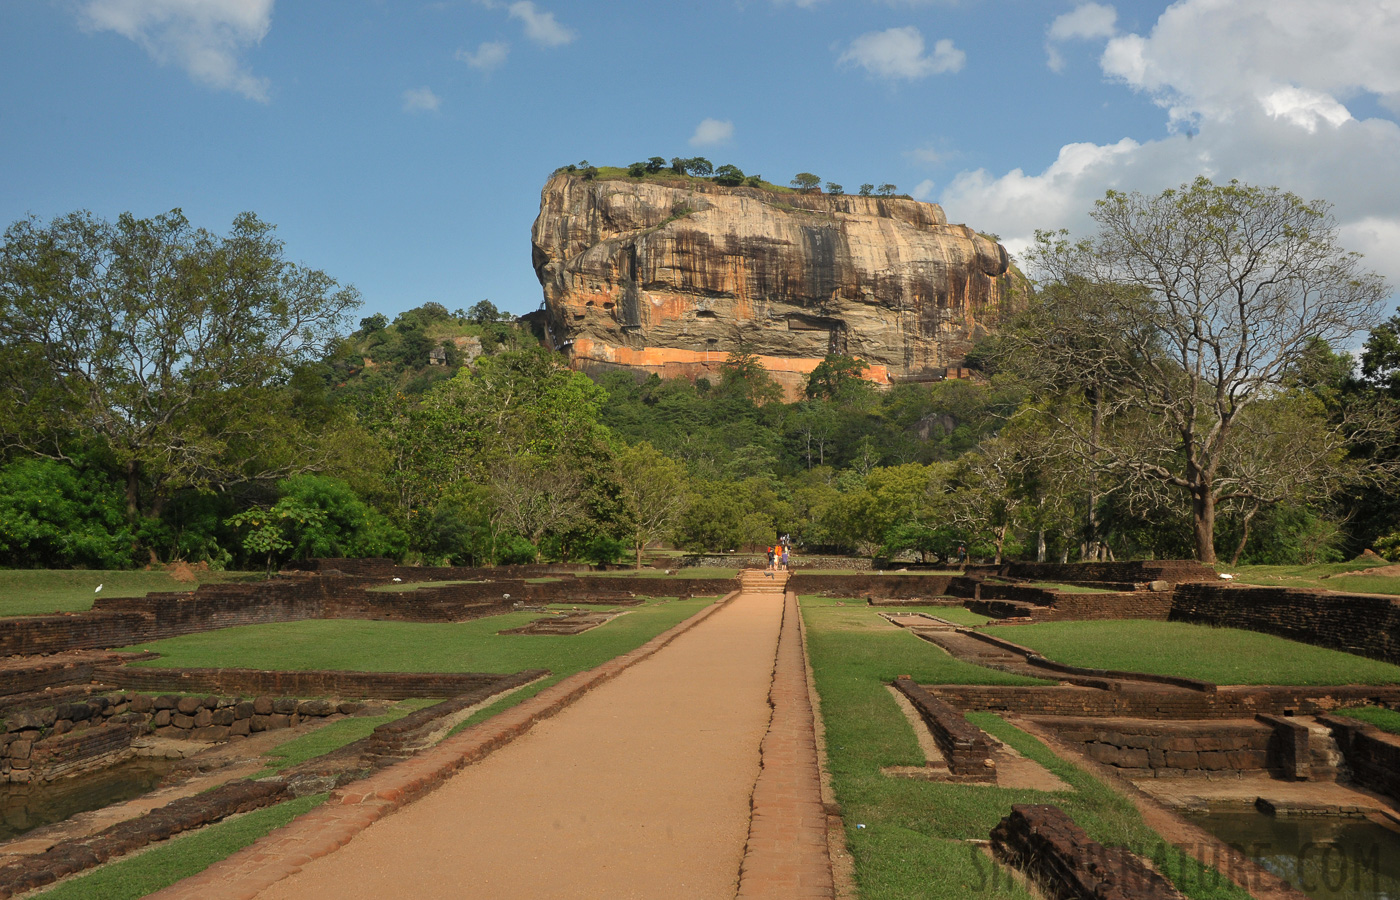 Sigiriya [32 mm, 1/640 sec at f / 16, ISO 1000]